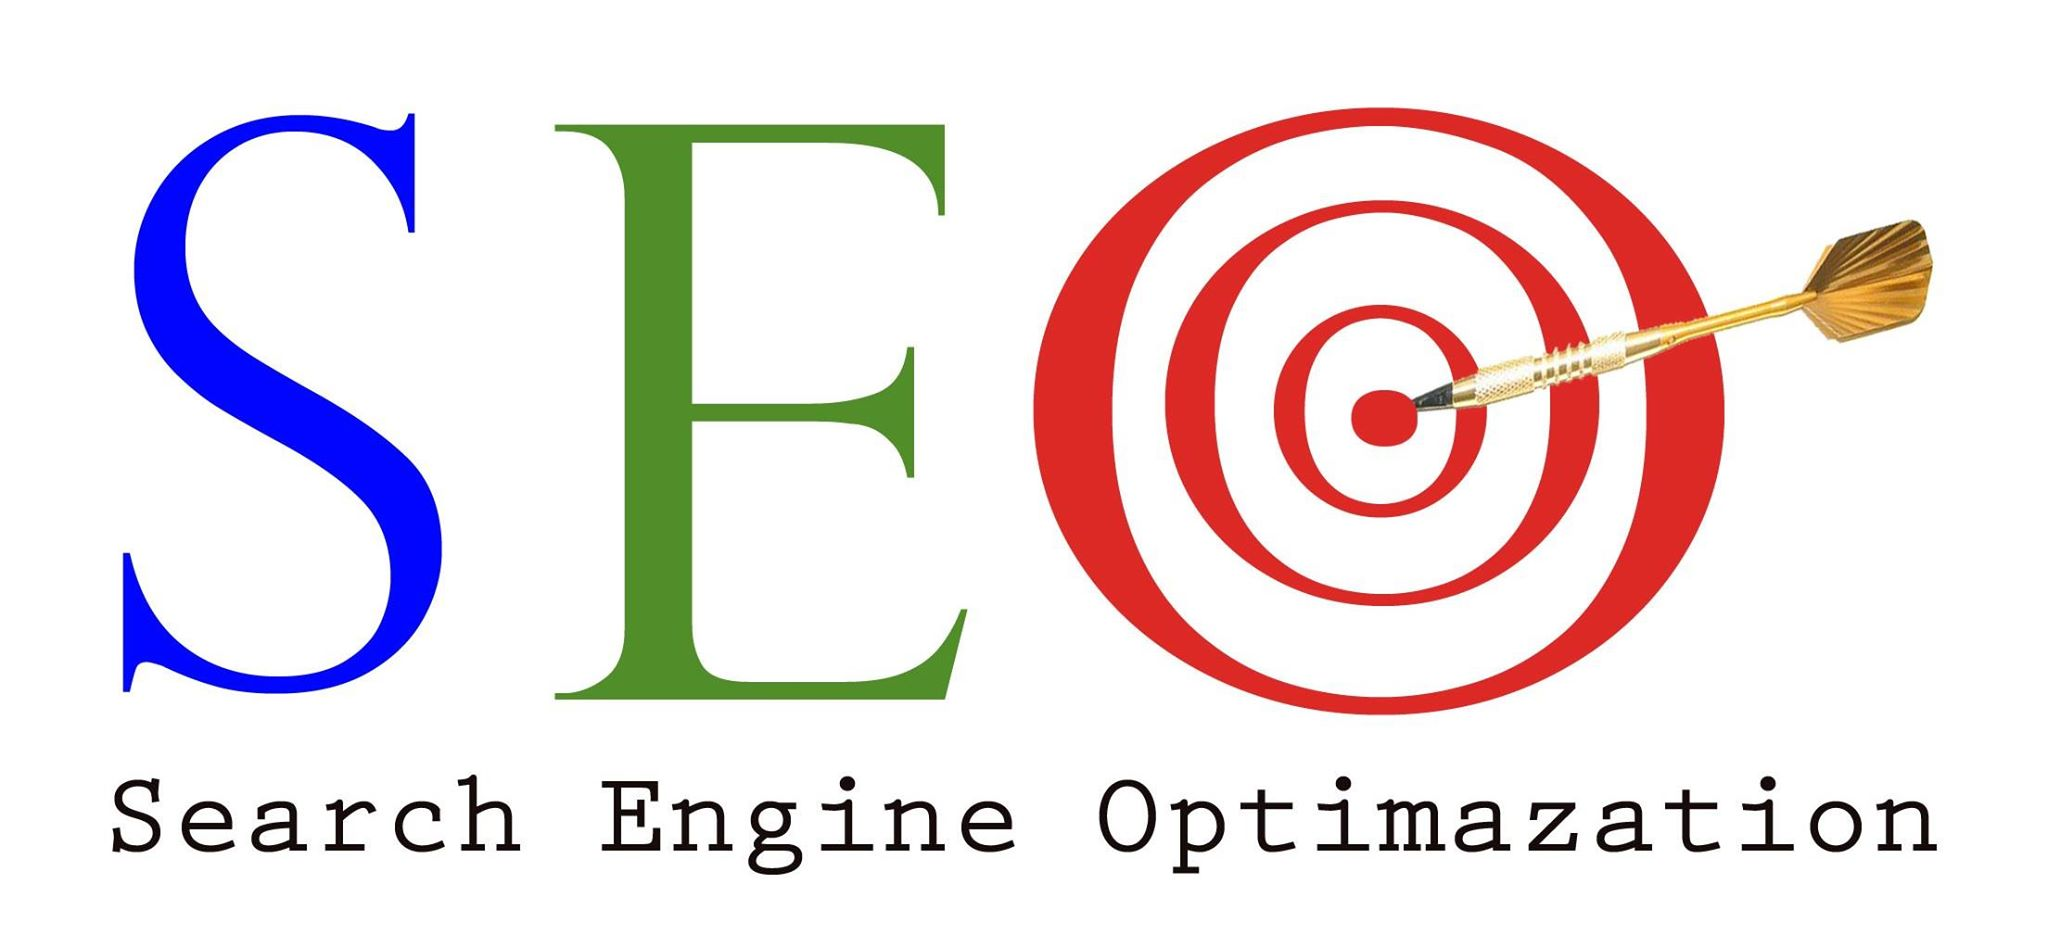 seo to get more traffic on site